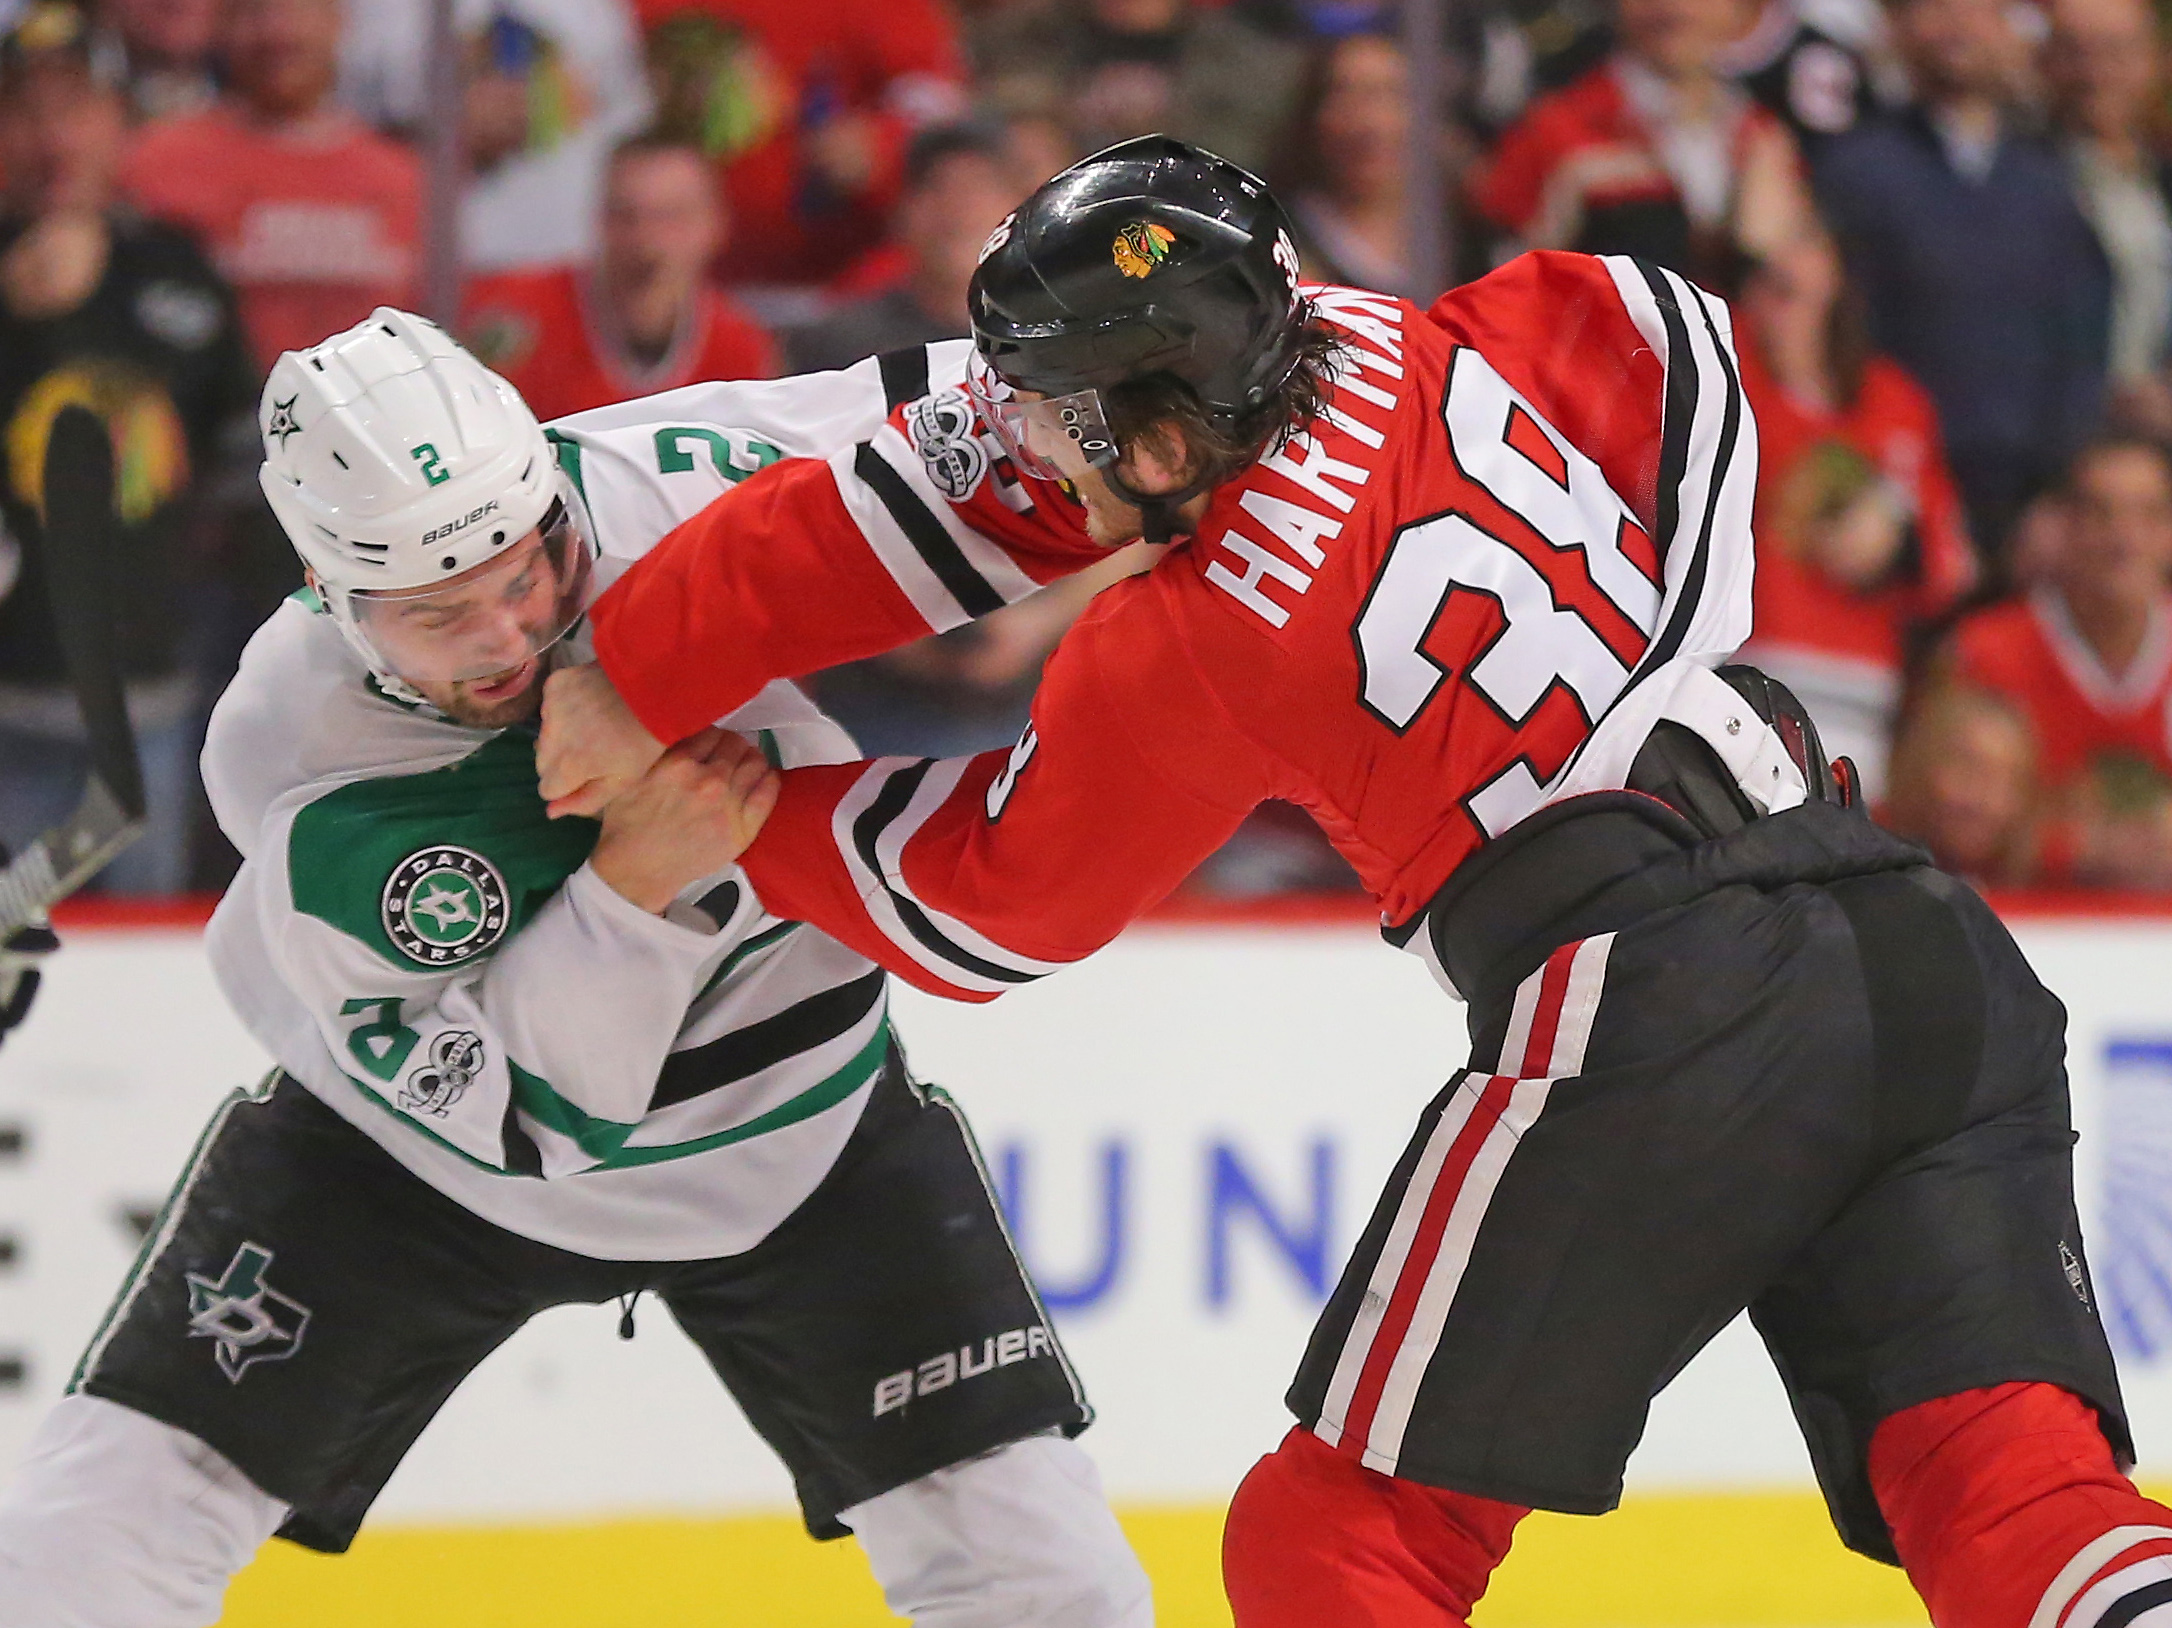 9966984-nhl-dallas-stars-at-chicago-blackhawks